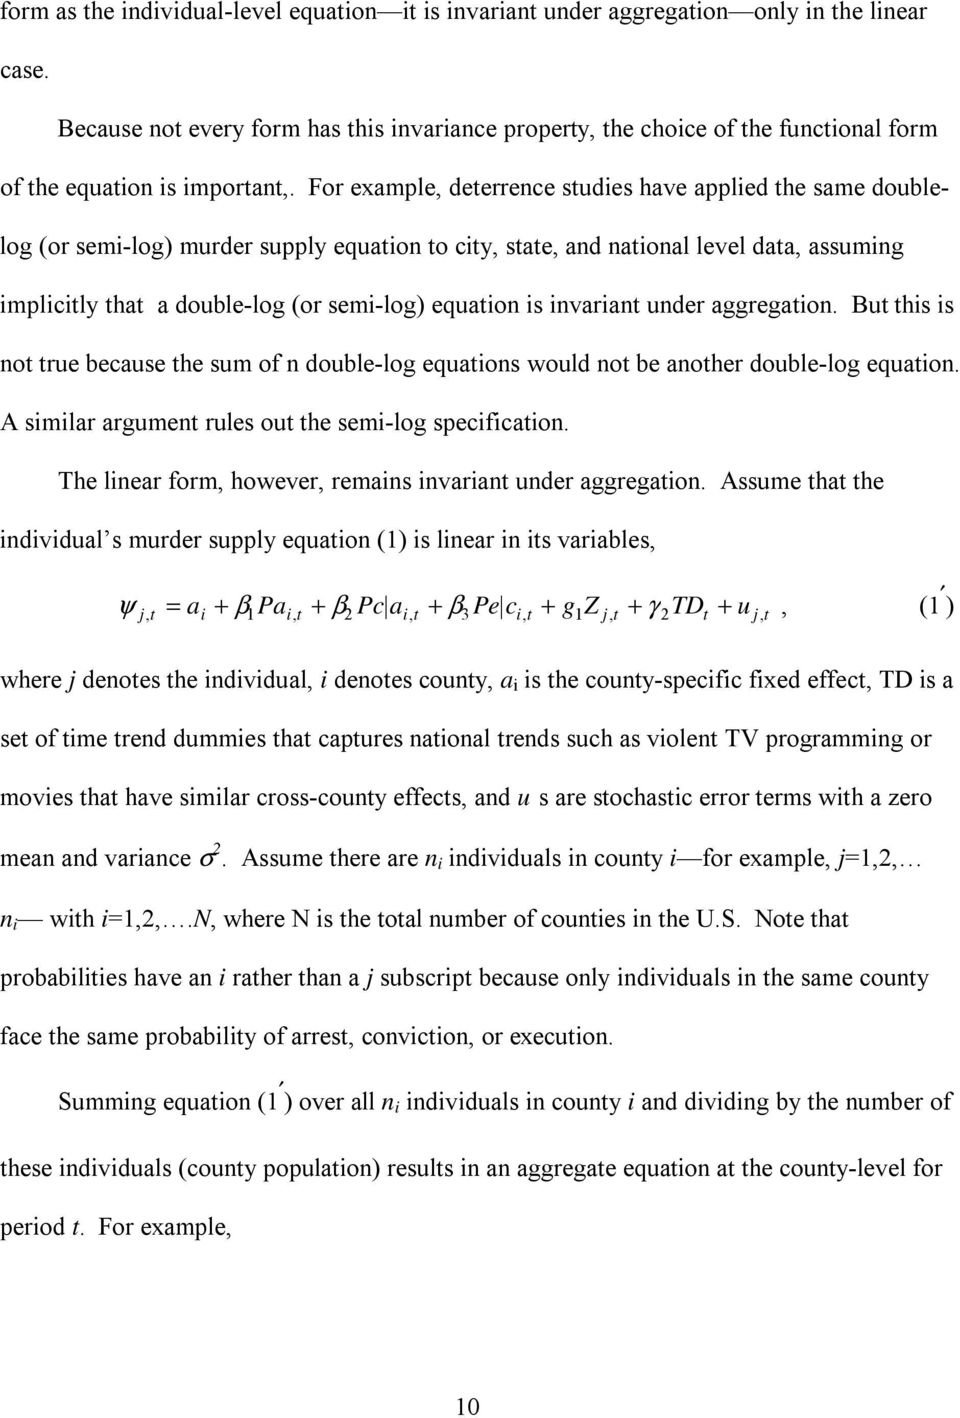 For example, deterrence studies have applied the same doublelog (or semi-log) murder supply equation to city, state, and national level data, assuming implicitly that a double-log (or semi-log)